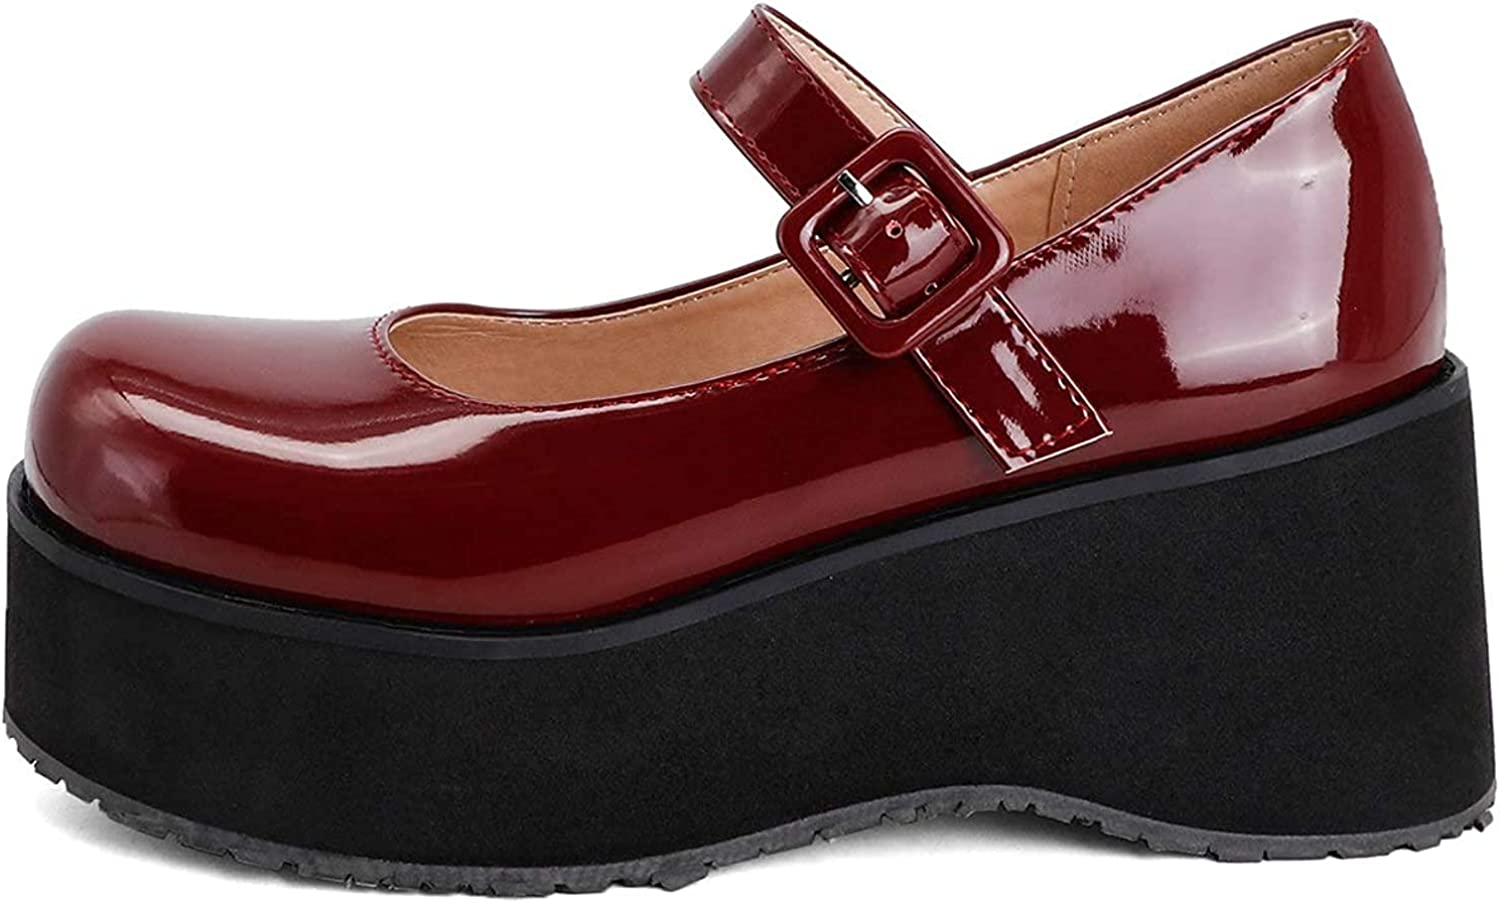 Womens Wedges Shoes High material Patent Clearance SALE! Limited time! Leather Platform J Oxfords Pumps Mary